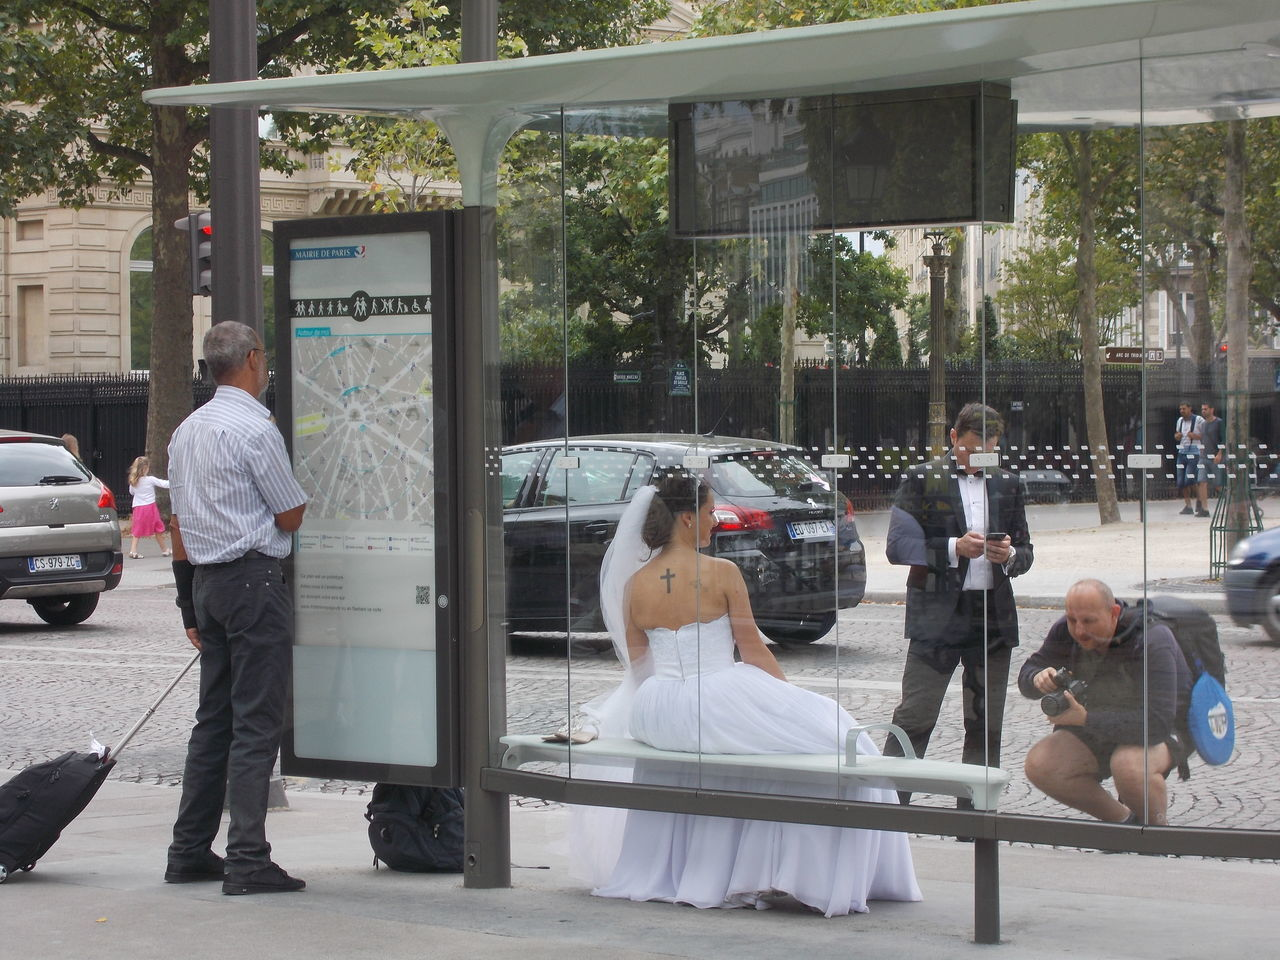 Bride Bus Stop Champs-Élysées  Charles De Gaulle Etoile Map Paris Tatoo Tourist Wedding Wedding Dress Wedding Photographer Wedding Photography Wedding Photos Wedding Photoshoot